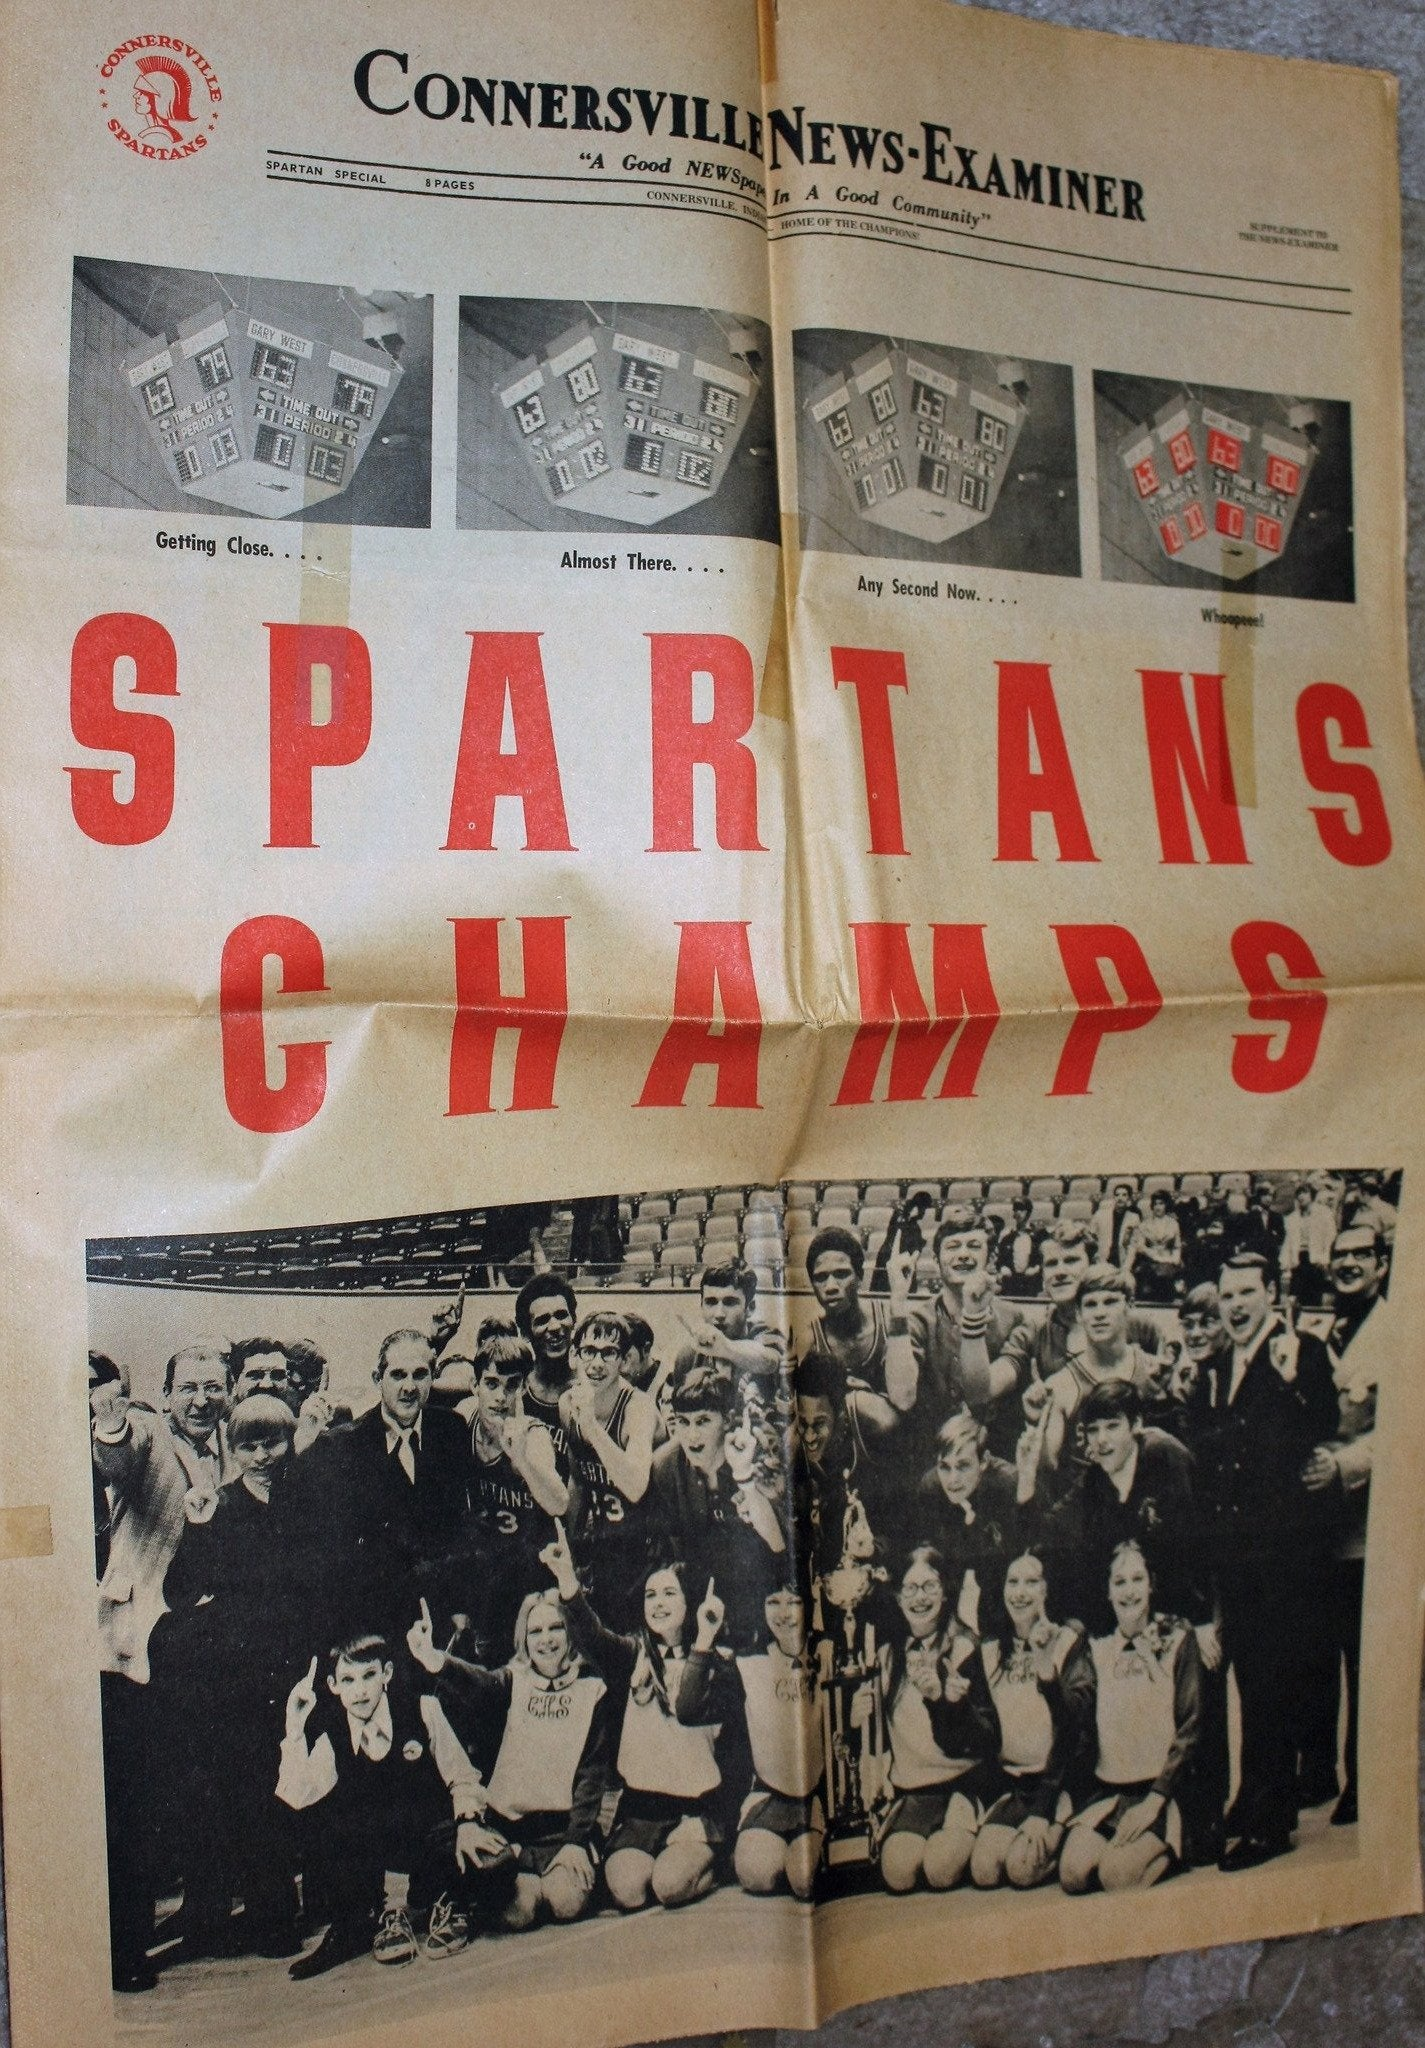 1972 Connersville Indiana High School Basketball State Champions Newspaper Supplement - Vintage Indy Sports